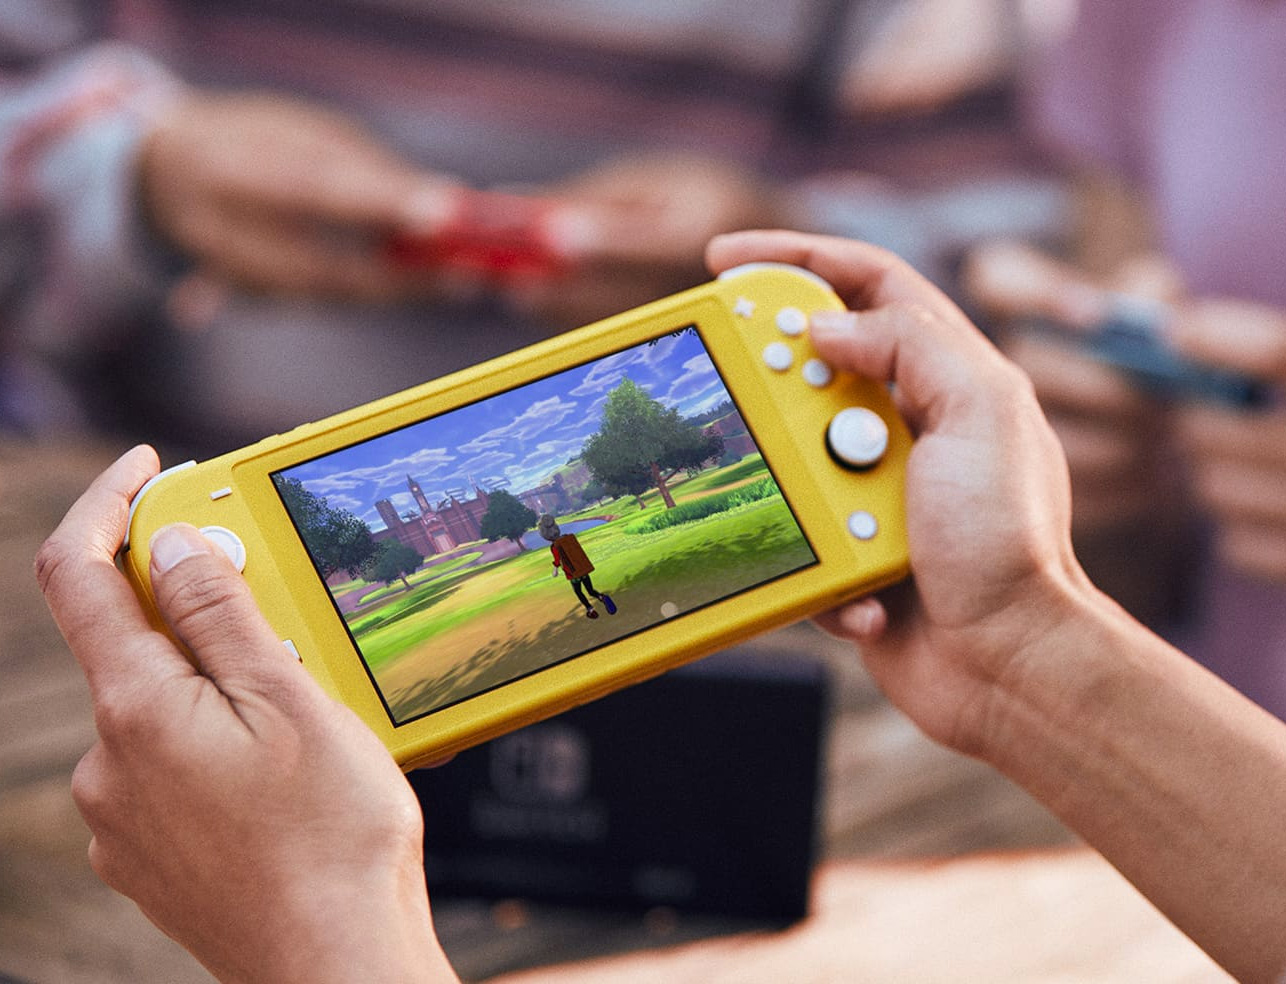 Nintendo Introduces Switch Lite Portable Console at werd.com